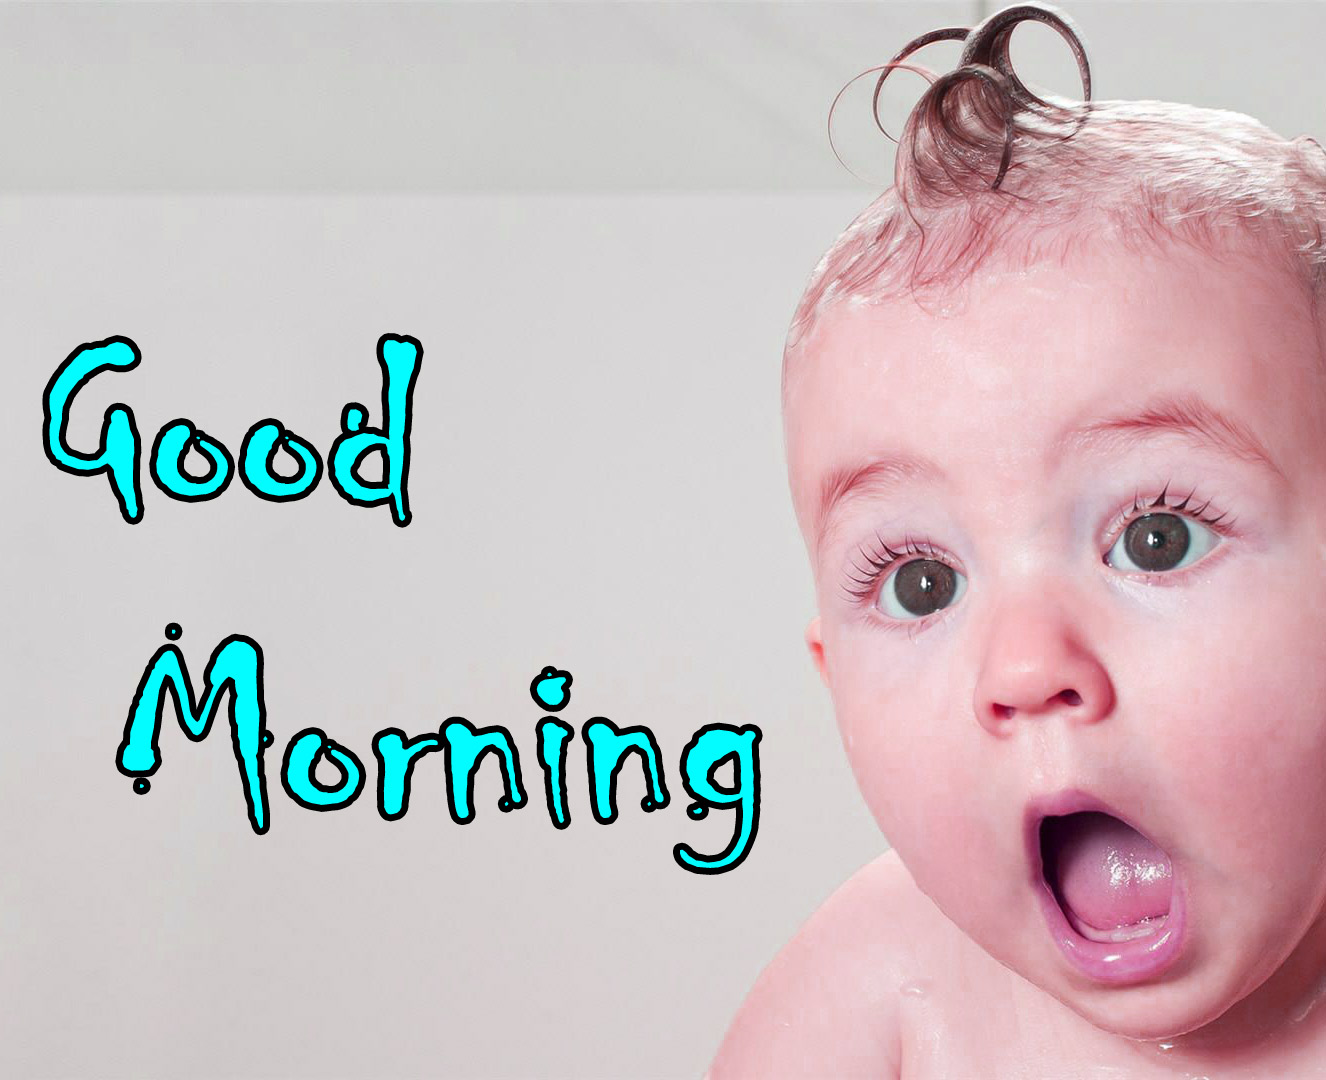 Funny Good Morning Wishes Images